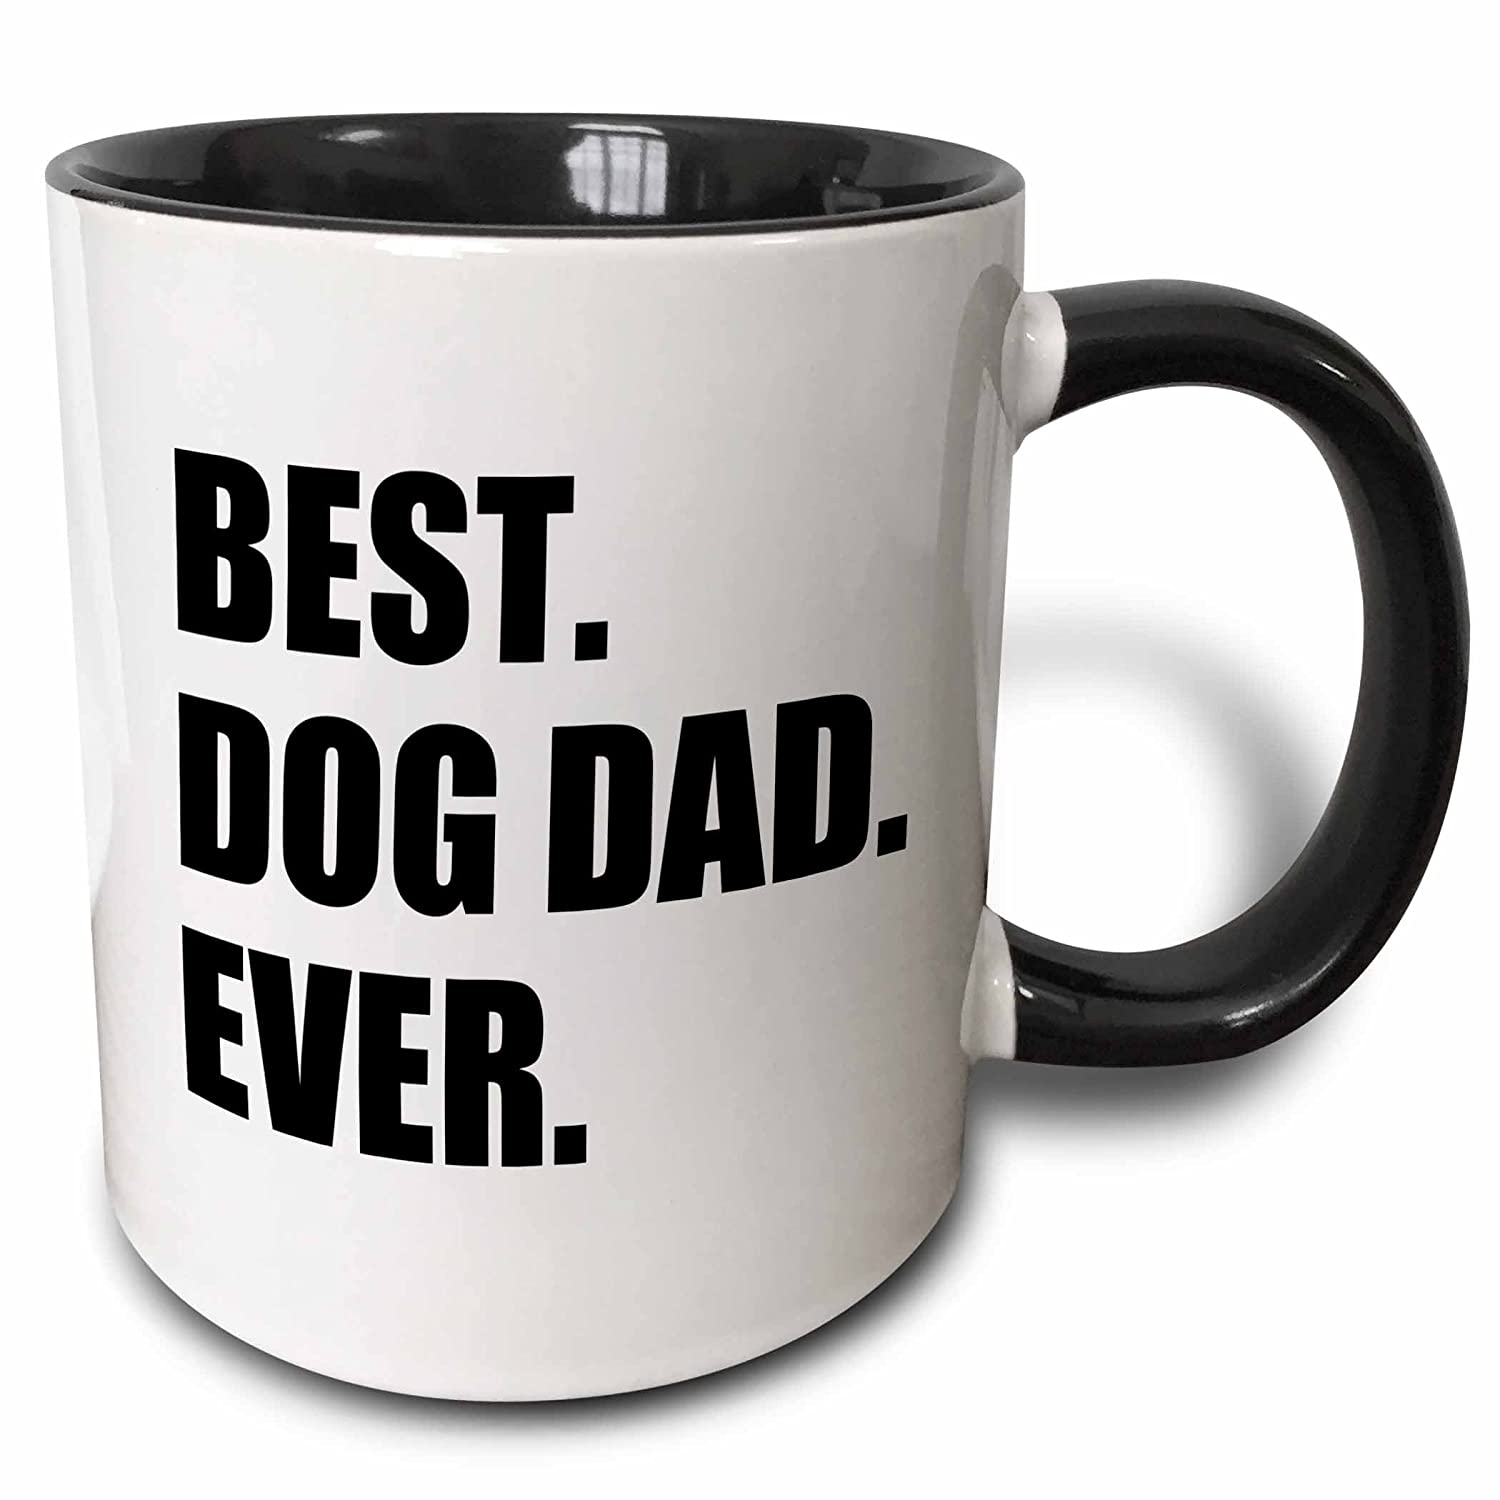 3dRose 184992_4 Best Dog Dad Ever - Fun Pet Owner Gifts For Him - Animal Lover Text Two Tone Mug, 11 oz, Black